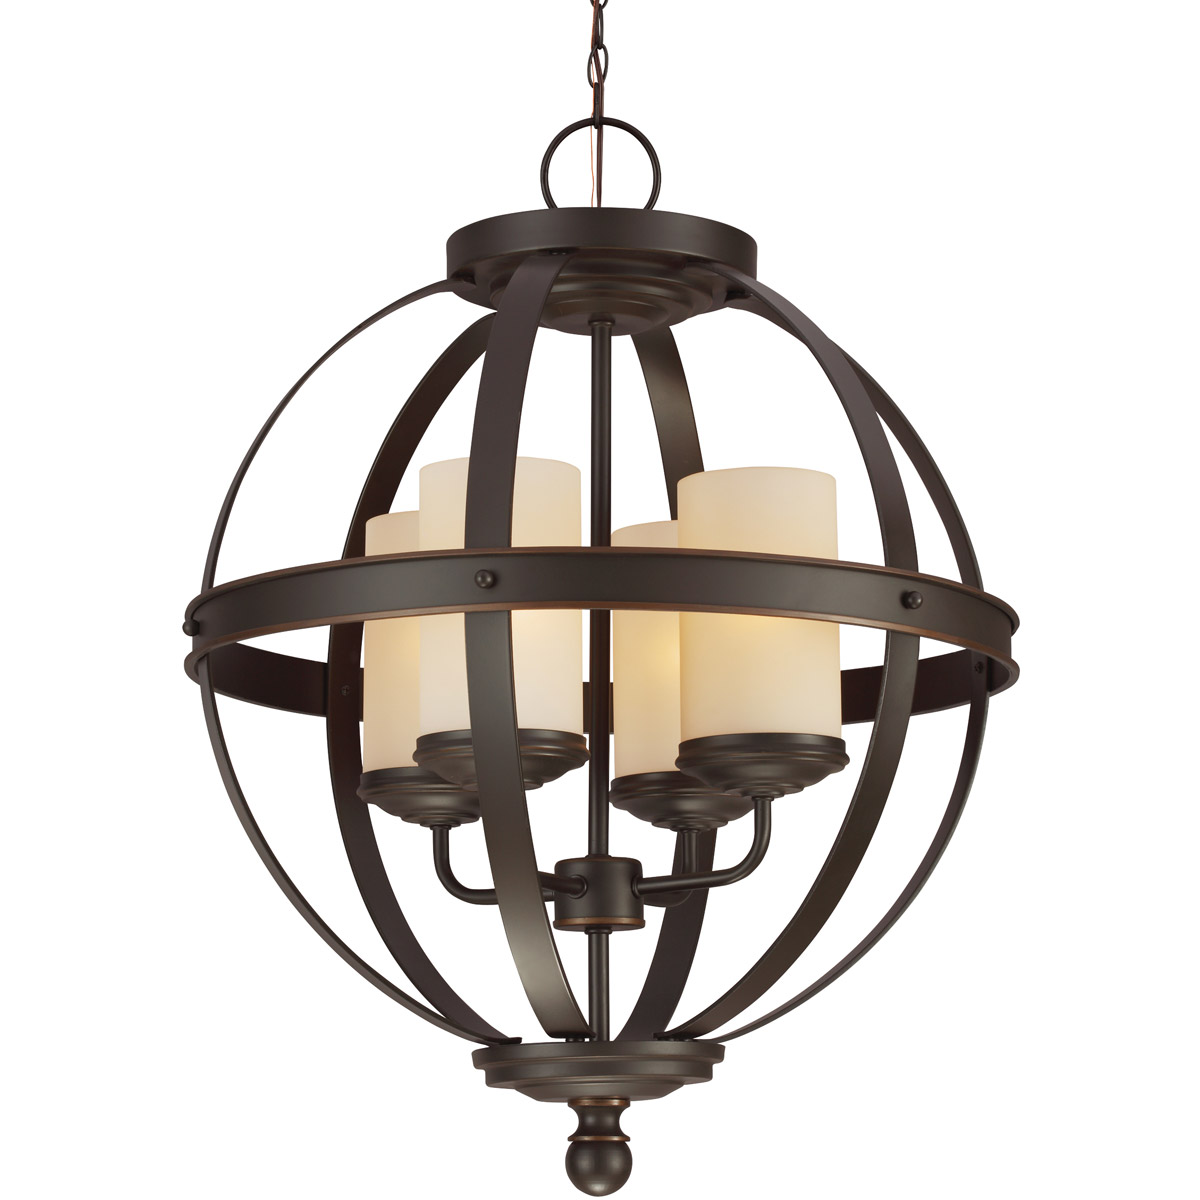 Sea Gull Sfera 4 Light Chandelier Single-Tier in Autumn Bronze 3190404BLE-715 photo